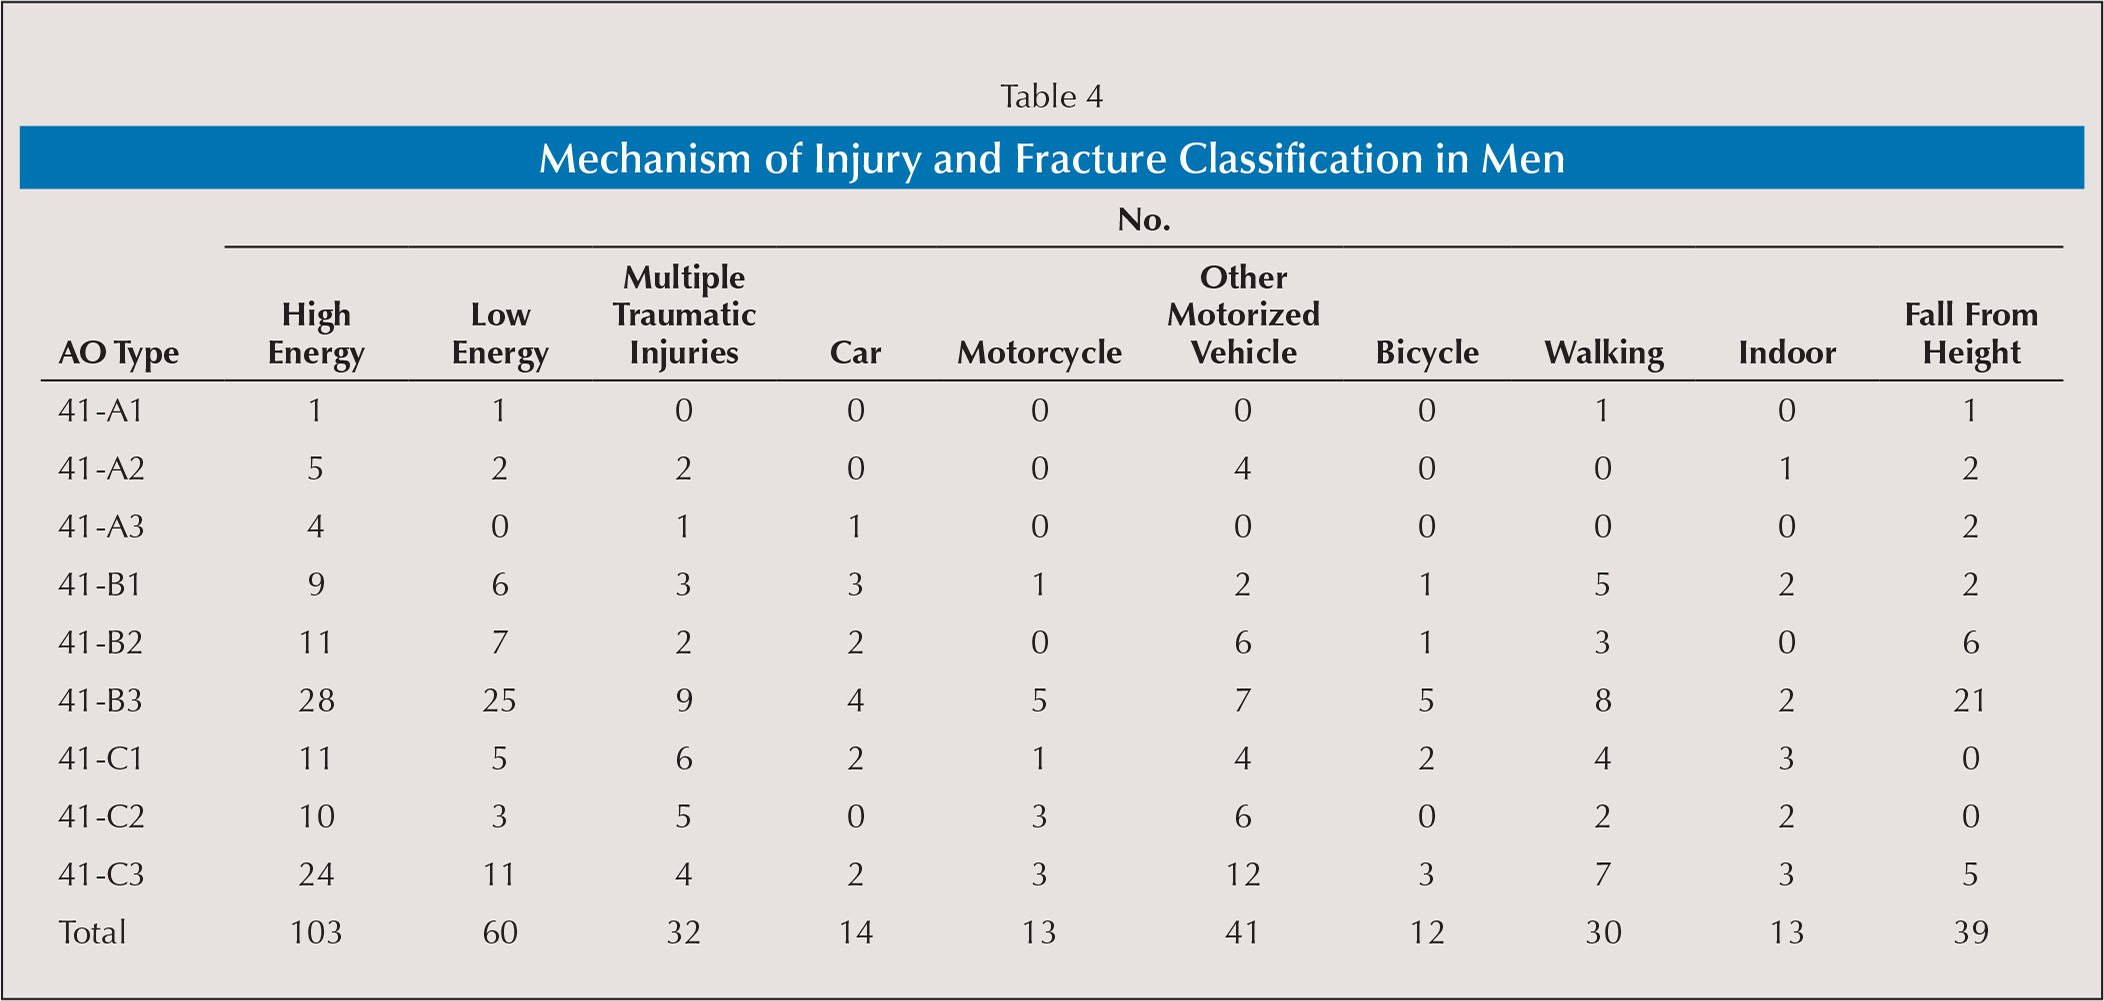 Mechanism of Injury and Fracture Classification in Men